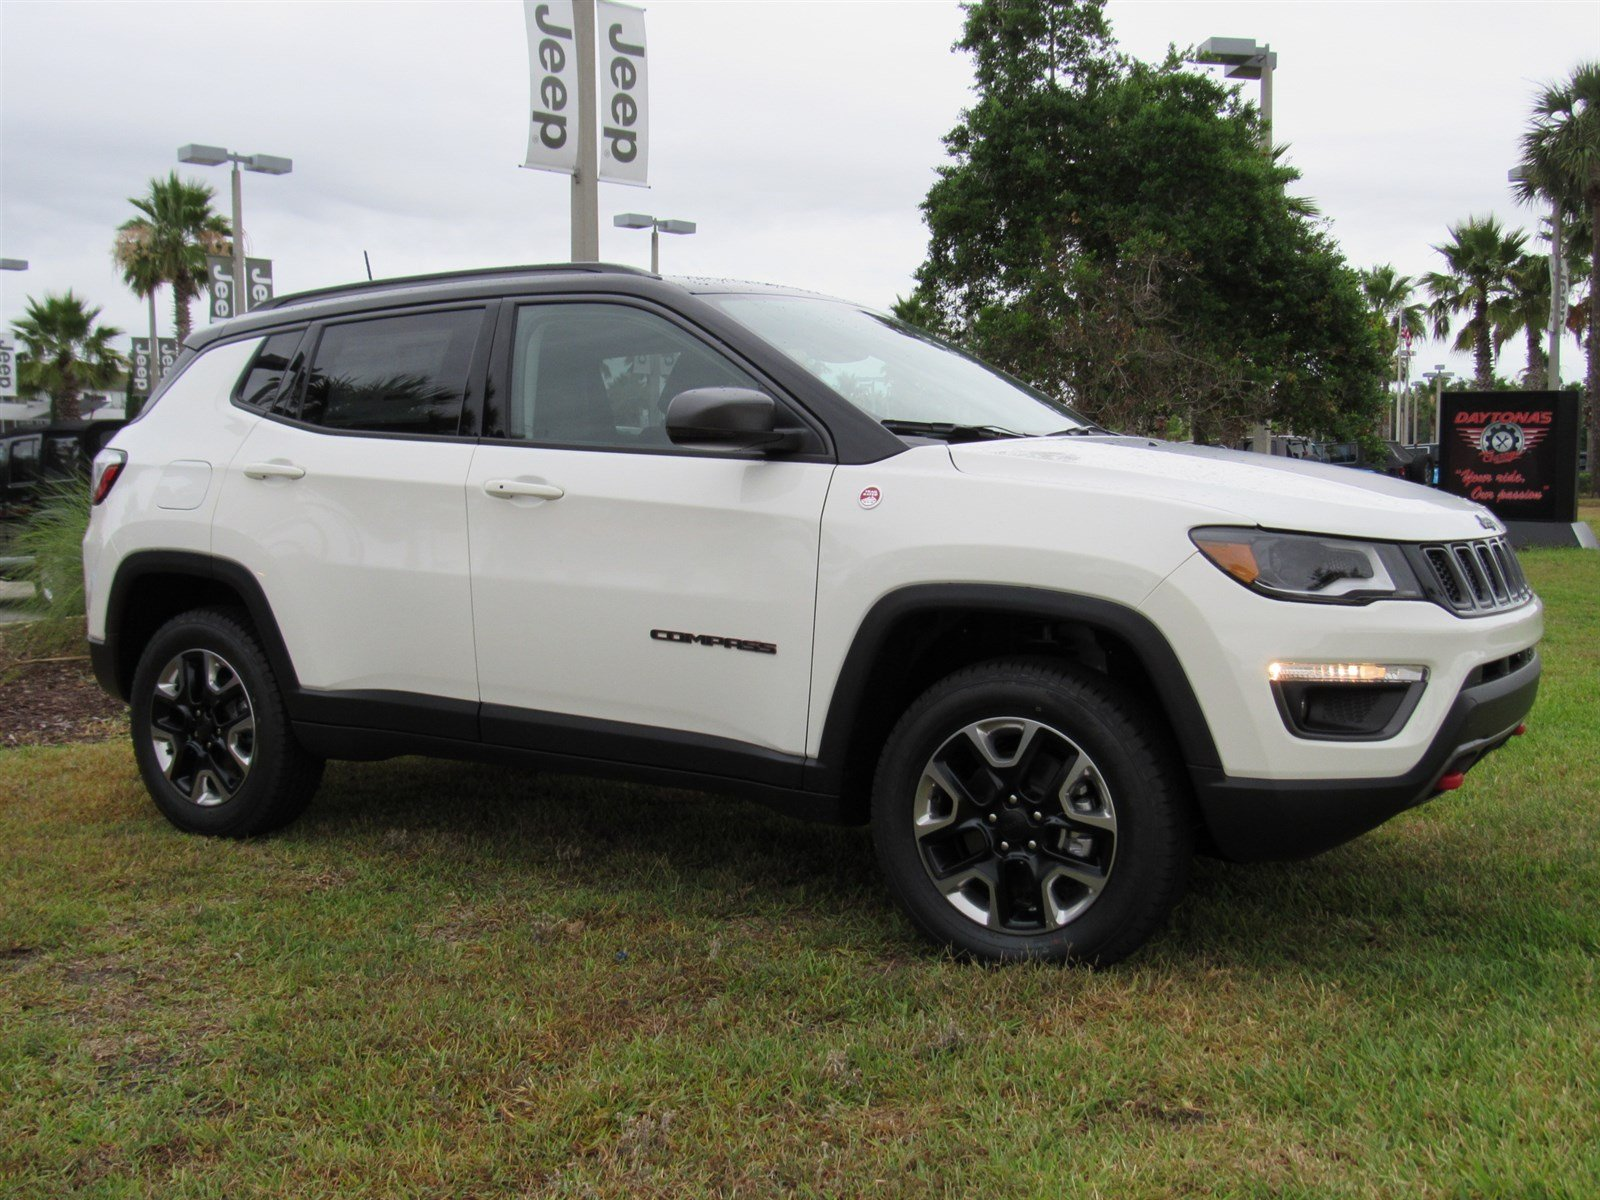 new 2017 jeep compass trailhawk sport utility in daytona beach j17576 daytona dodge chrysler. Black Bedroom Furniture Sets. Home Design Ideas